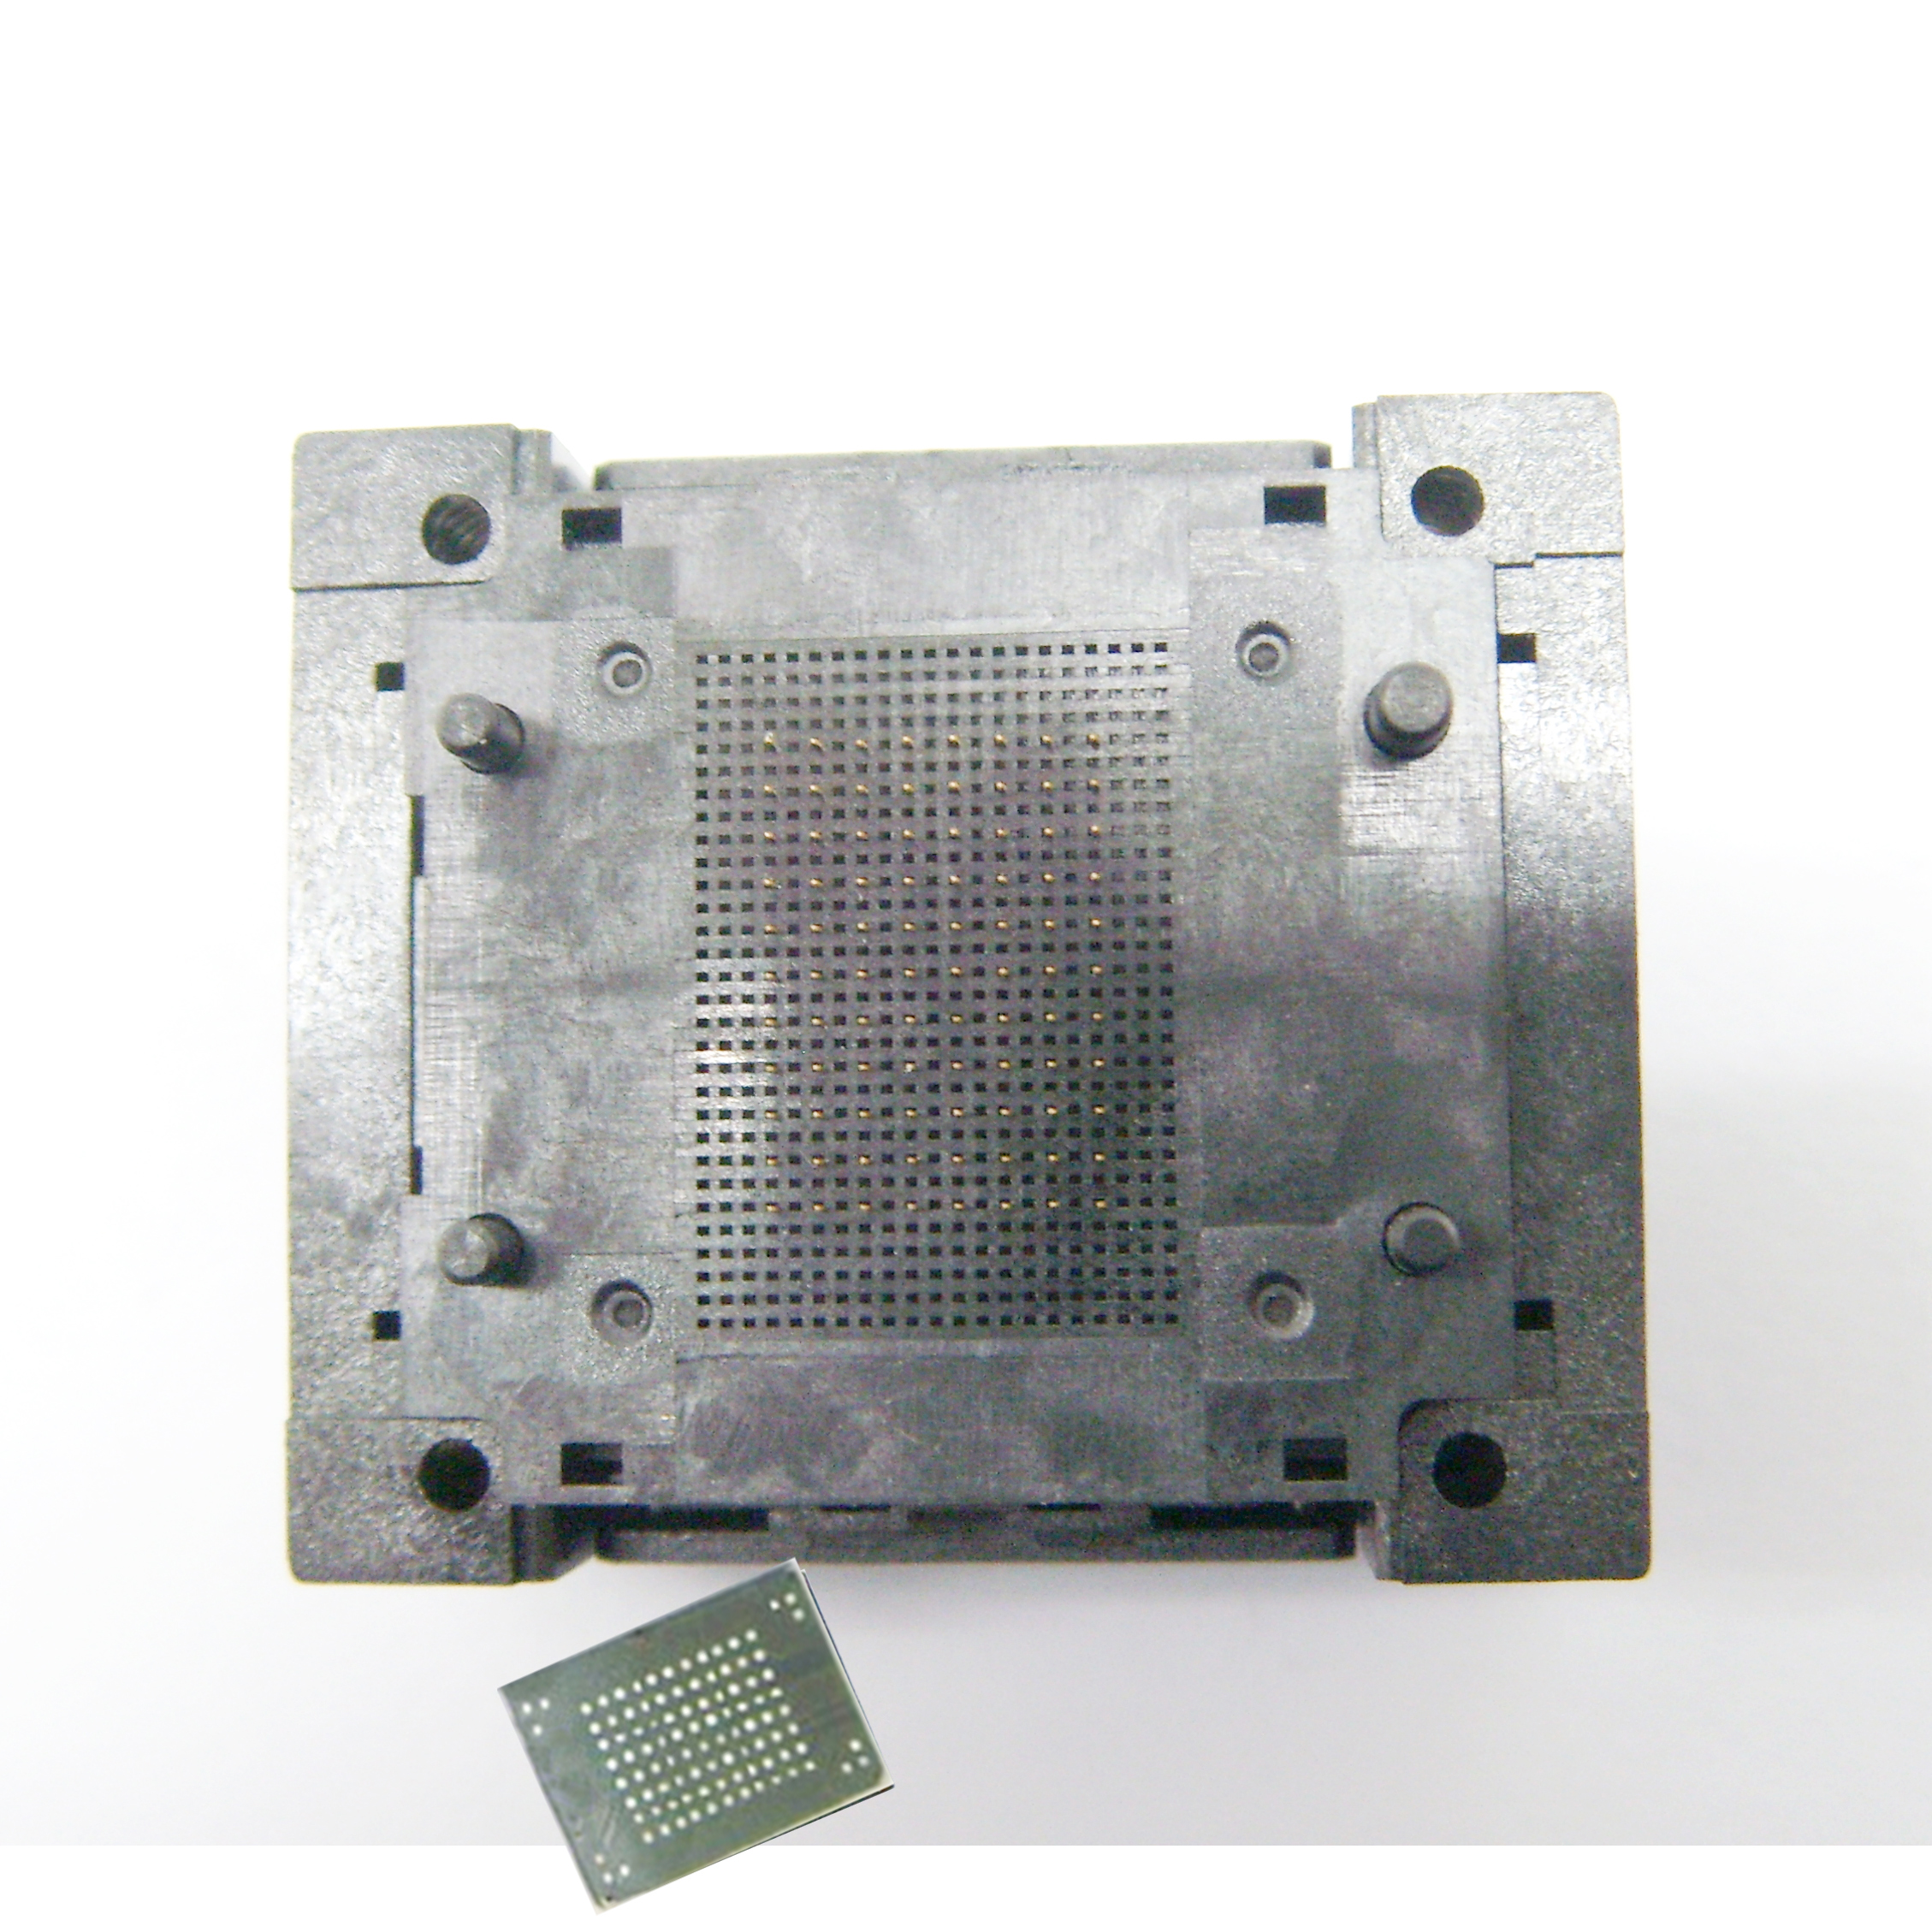 BGA100-1.0 OPEN TOP Burn in socket pin pitch 1.0mm IC size 14*18mm 12*18mm BGA100-1.0 BGA100 VFBGA100 burn in socket